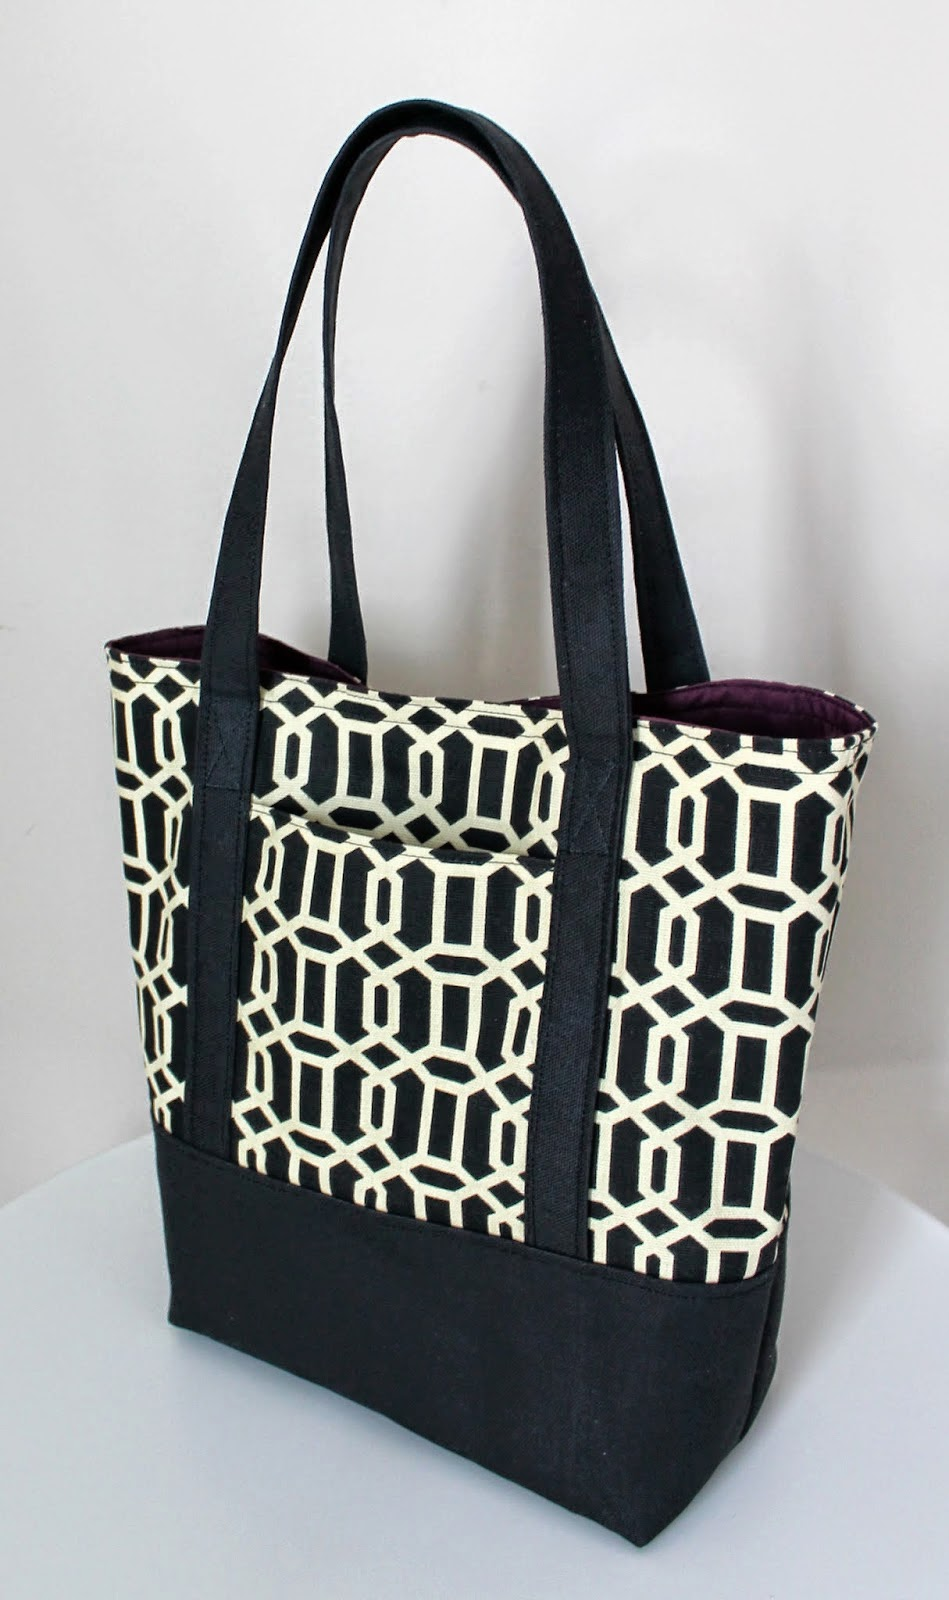 http://theinspiredwren.blogspot.com/2014/04/tutorial-lined-canvas-tote.html